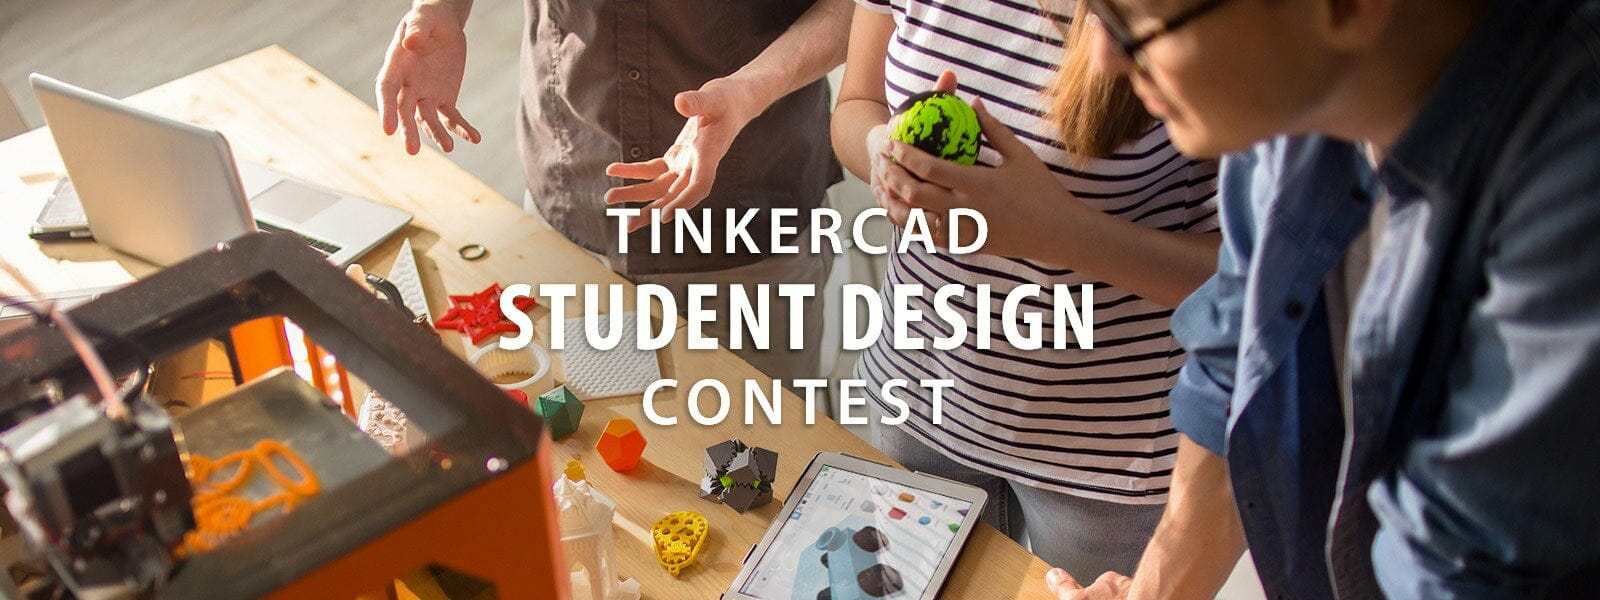 Tinkercad Student Design Online Contest from Amazon 2021